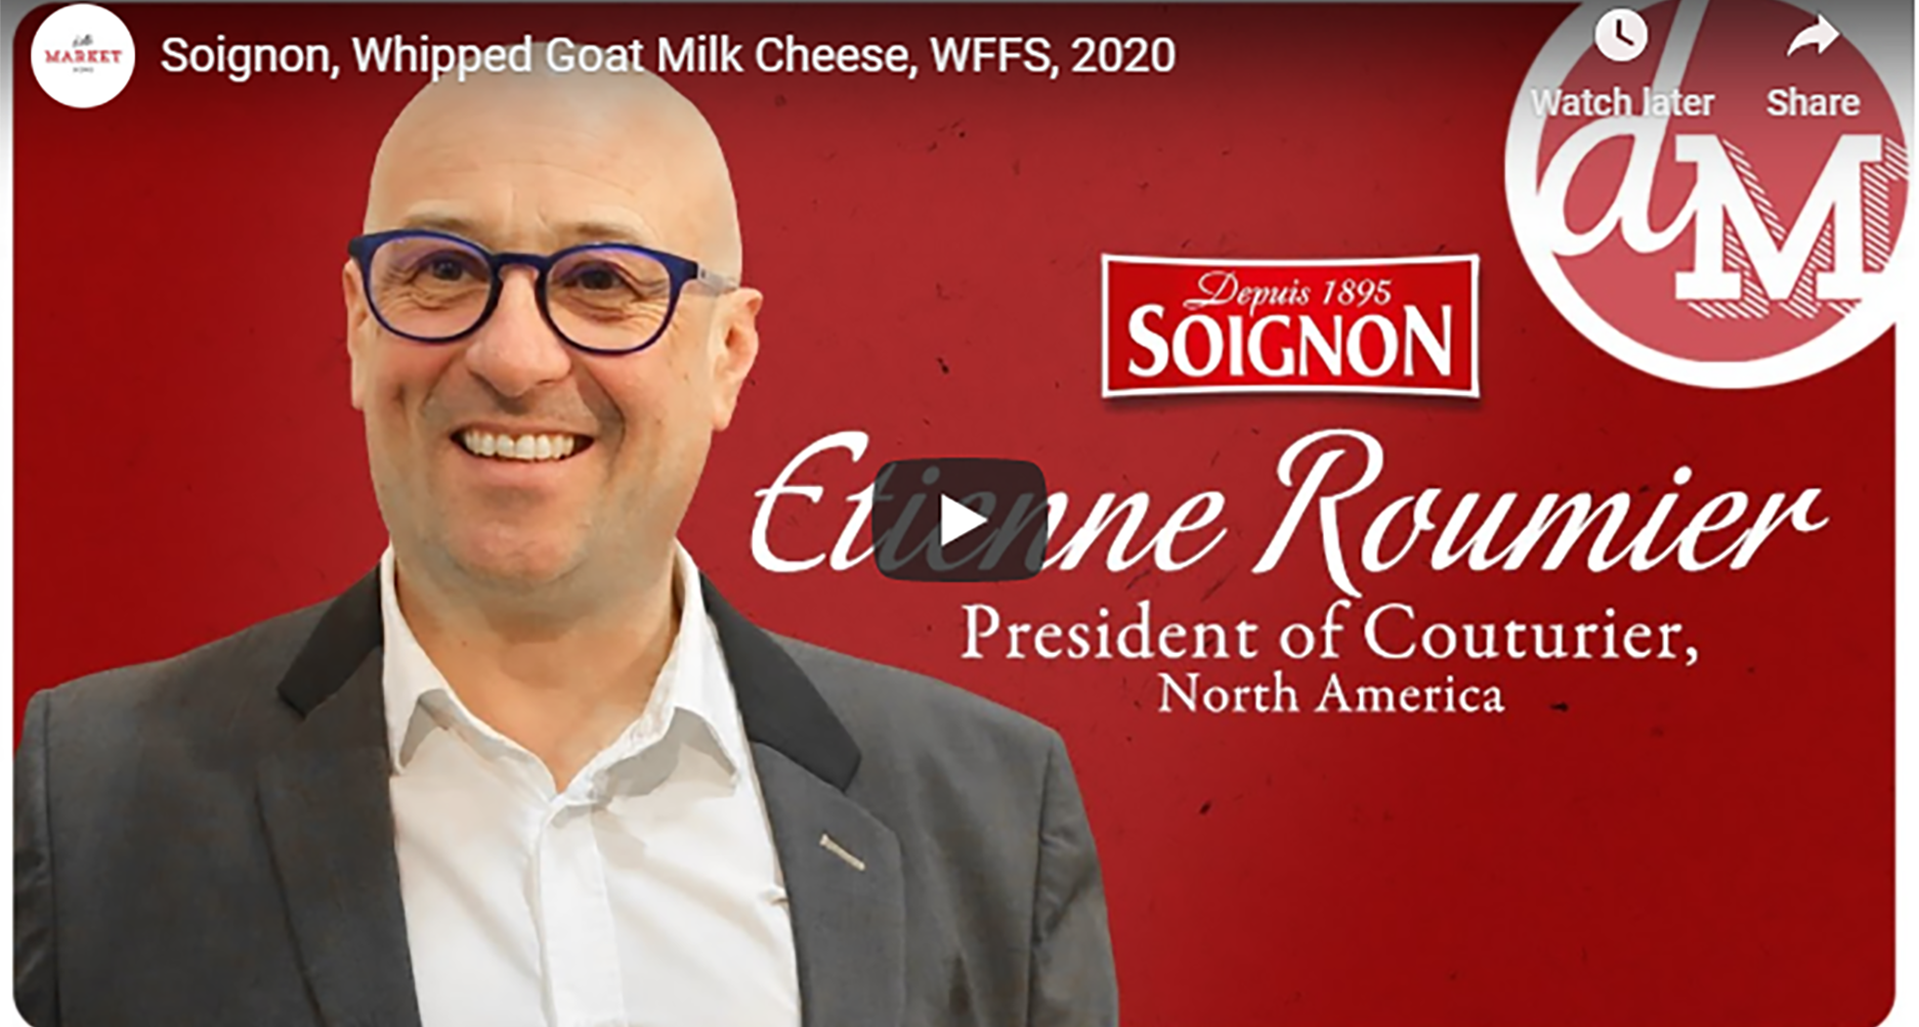 Soignon Brand Debuts Whipped Goat Cheese Innovation